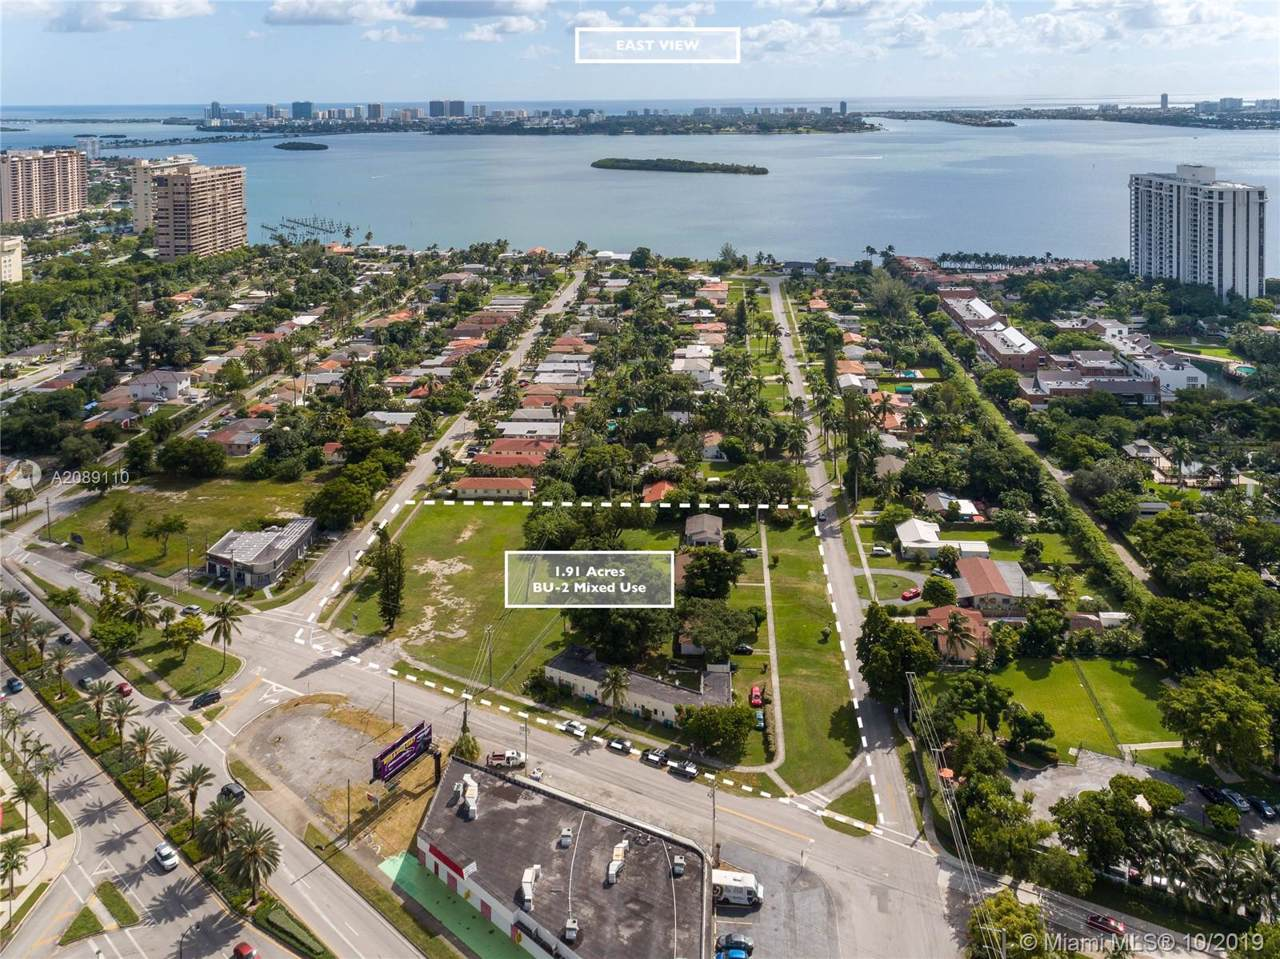 10845 Biscayne Blvd - Photo 1